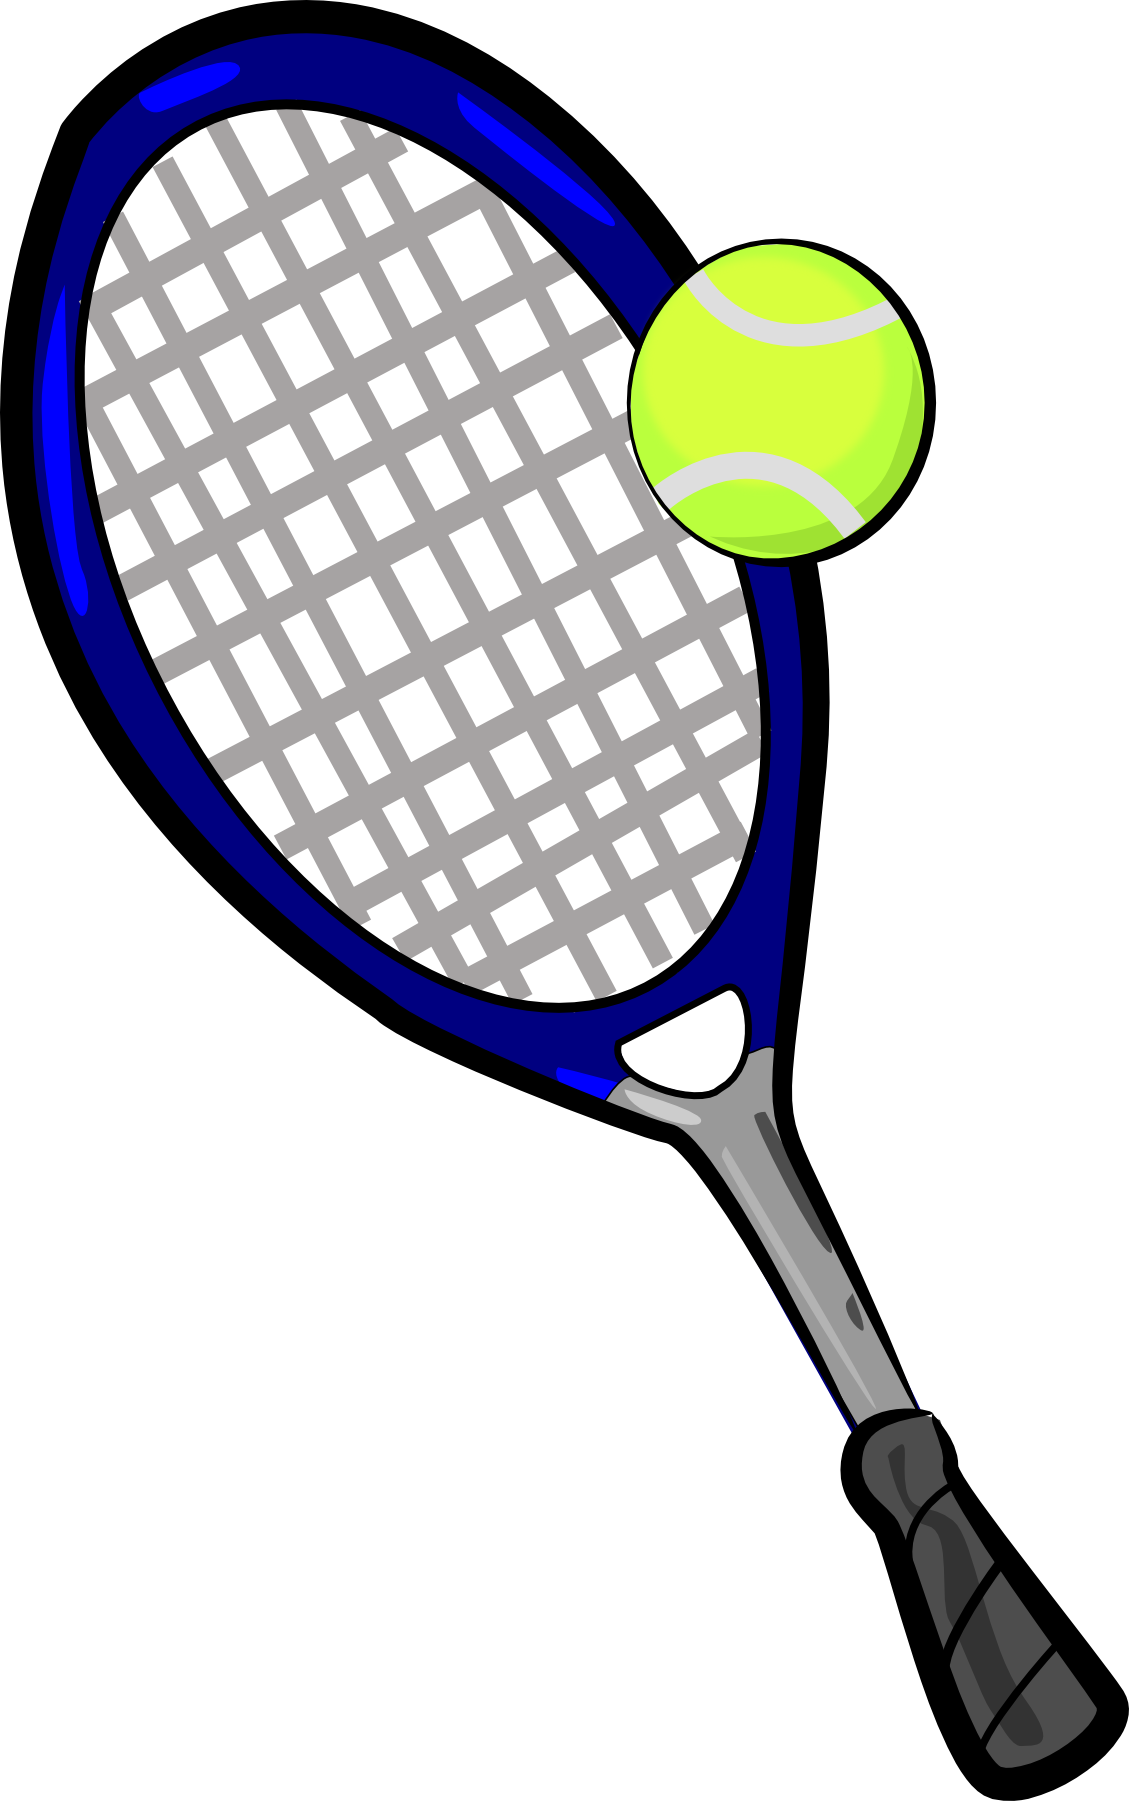 Sport clipart clear background. Tennis ball transparent pencil